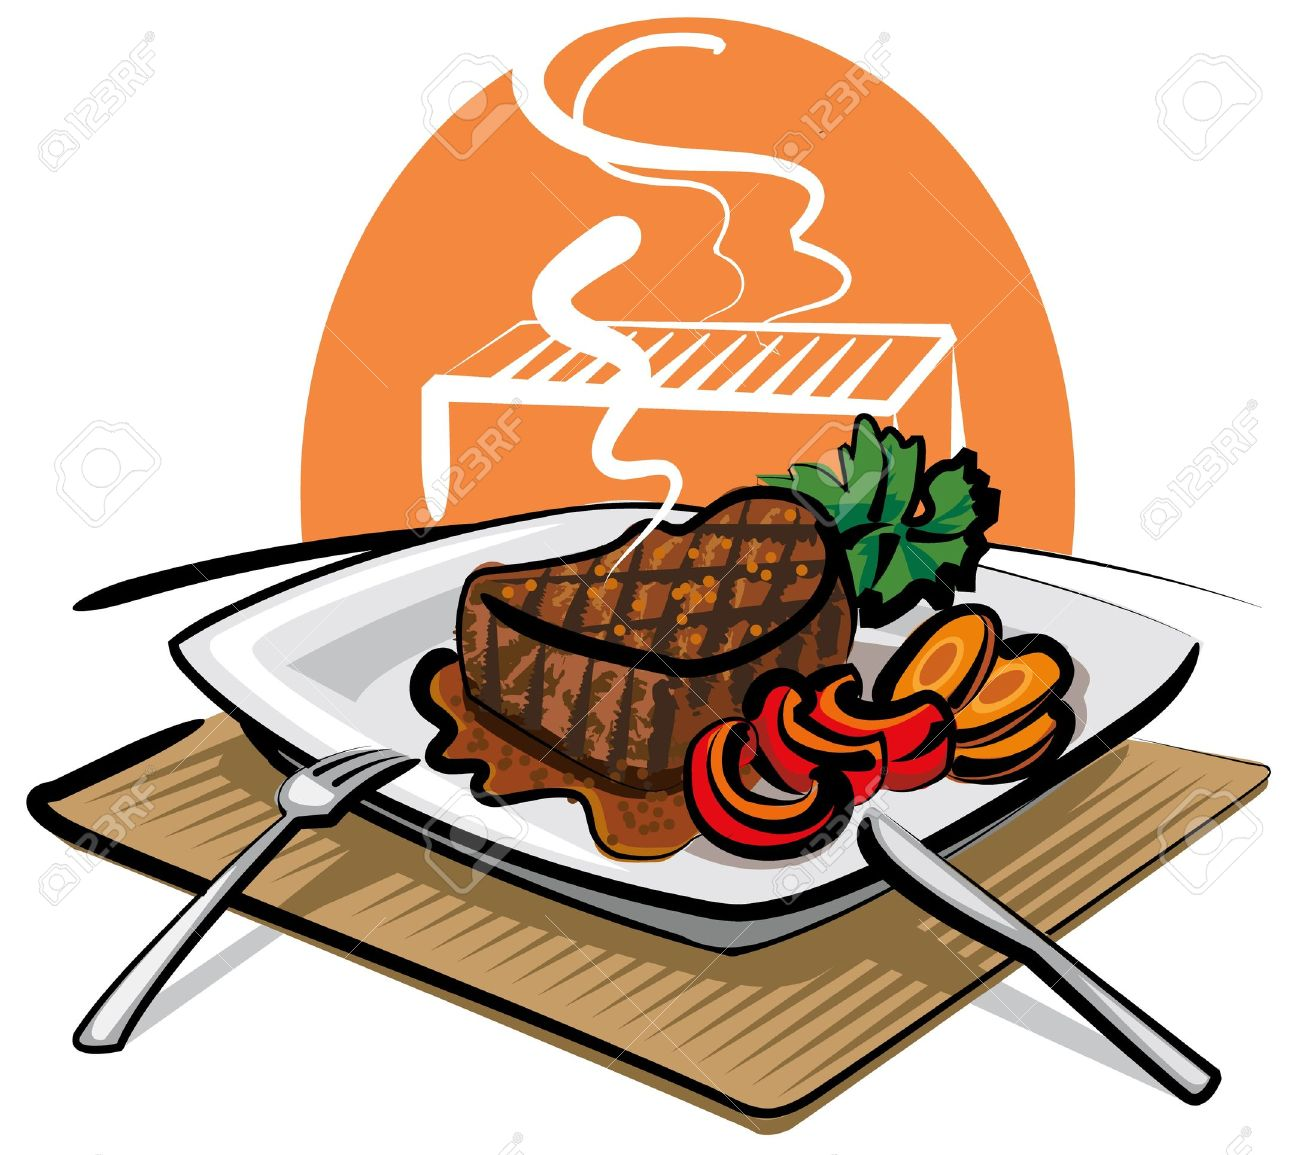 Beef clipart cooked meat.  collection of grilled